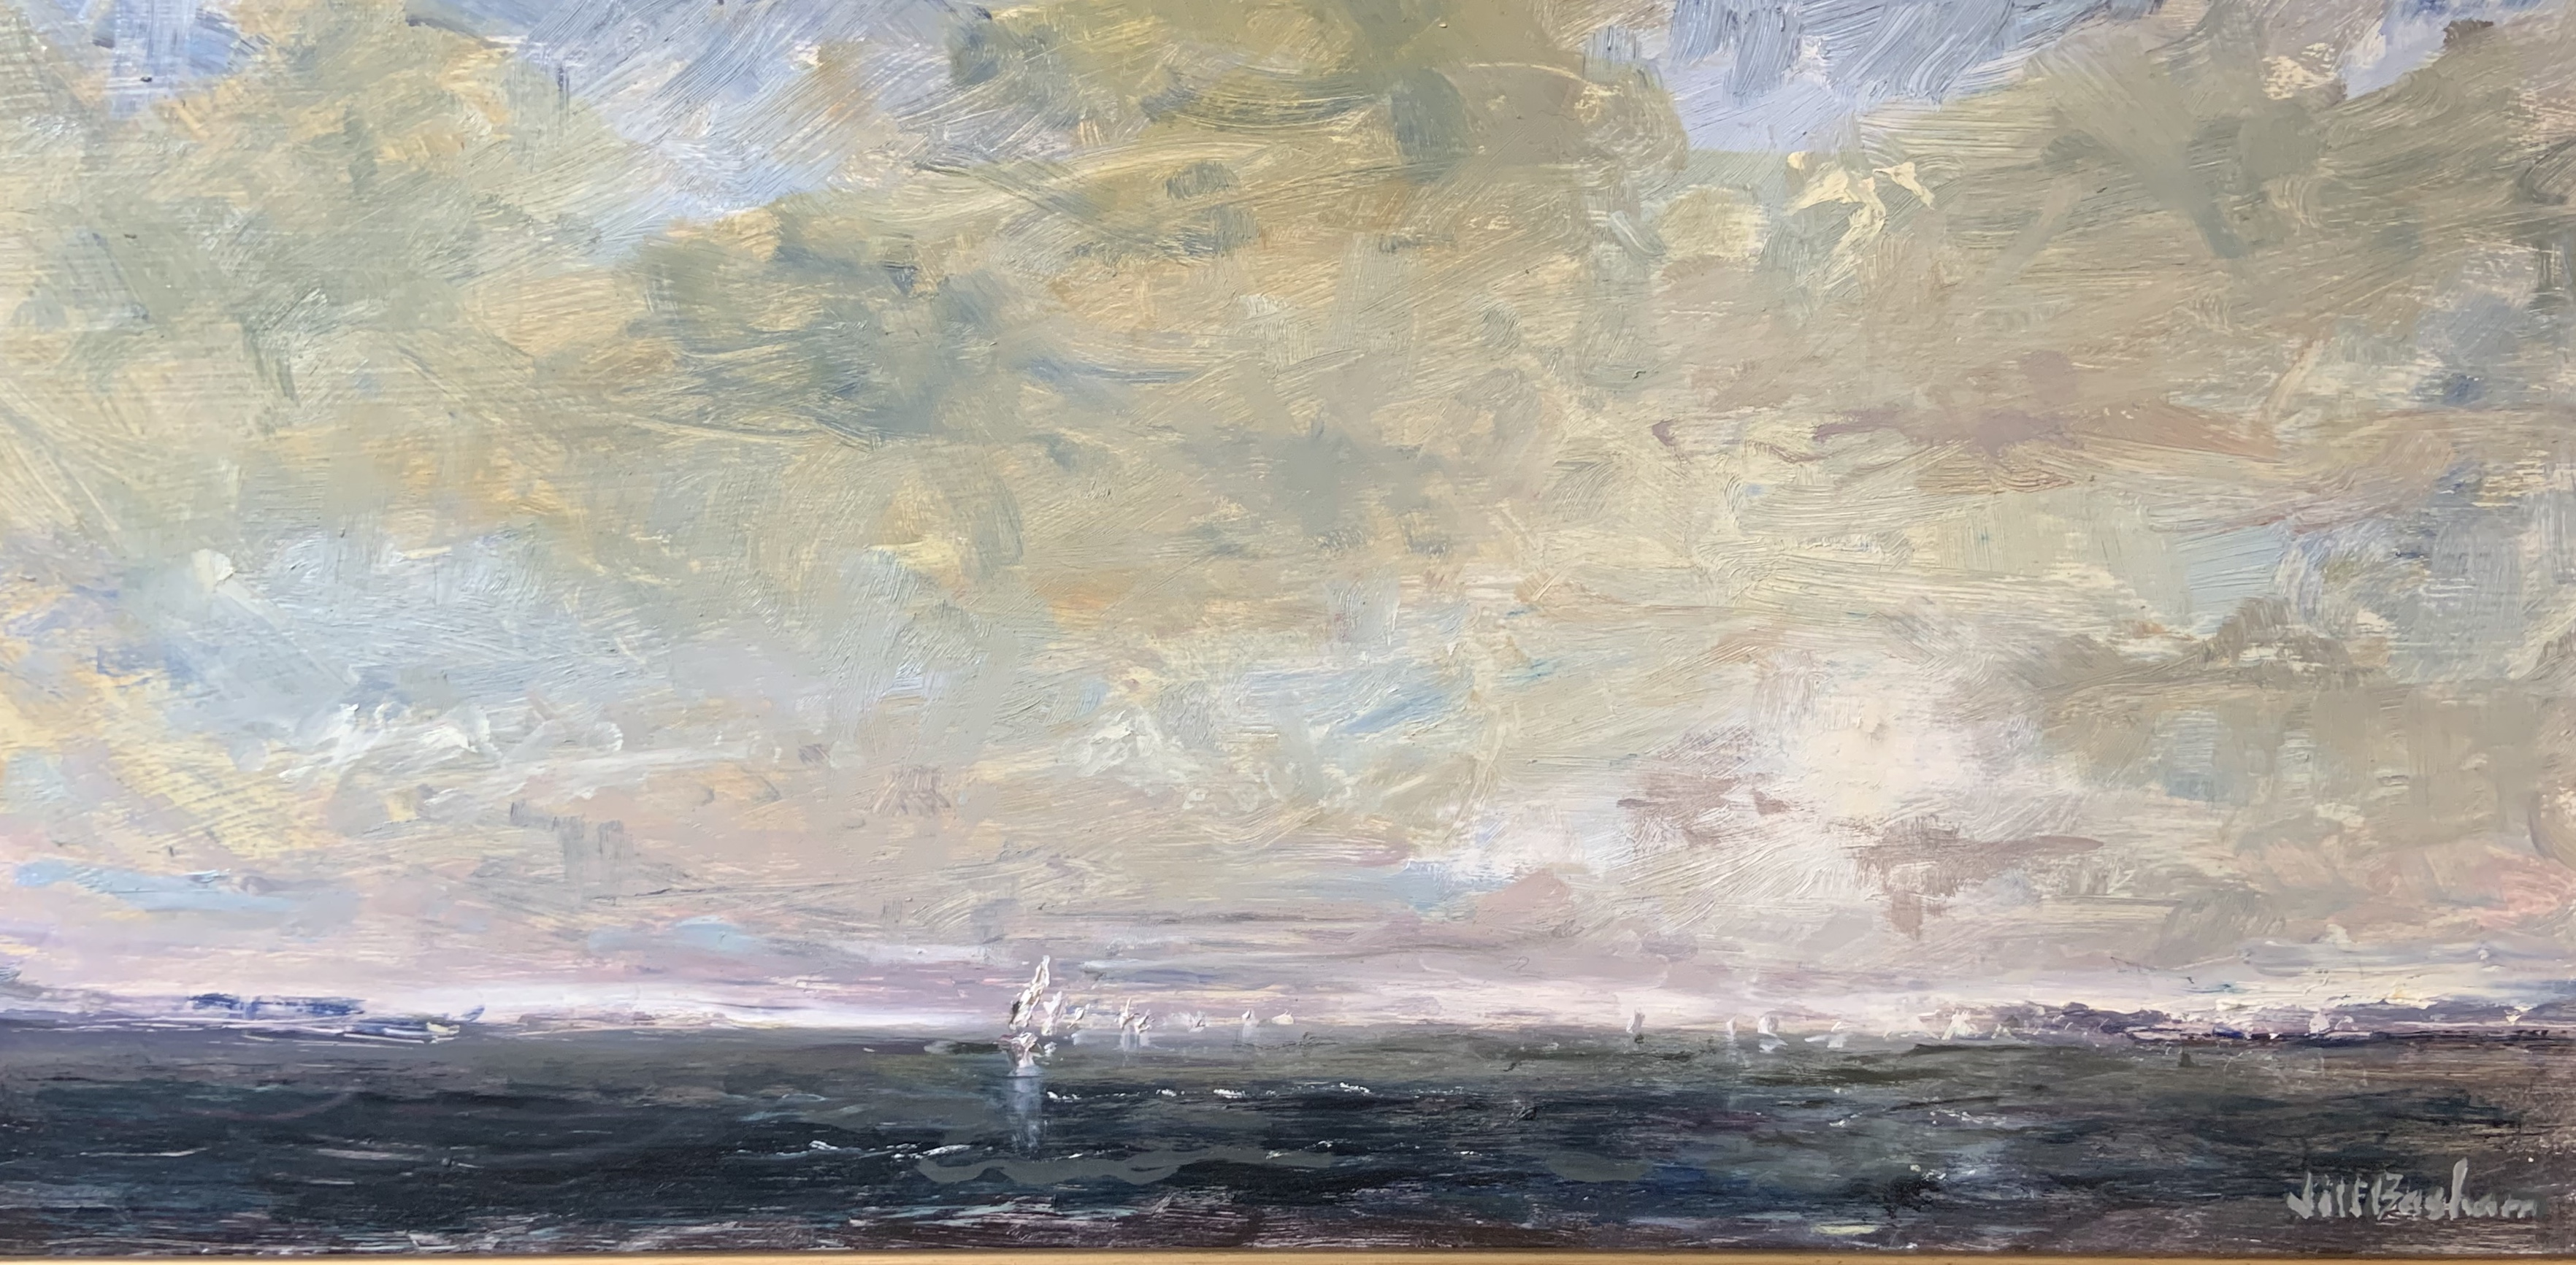 Windward on the Bay-Basham $3300 12x24